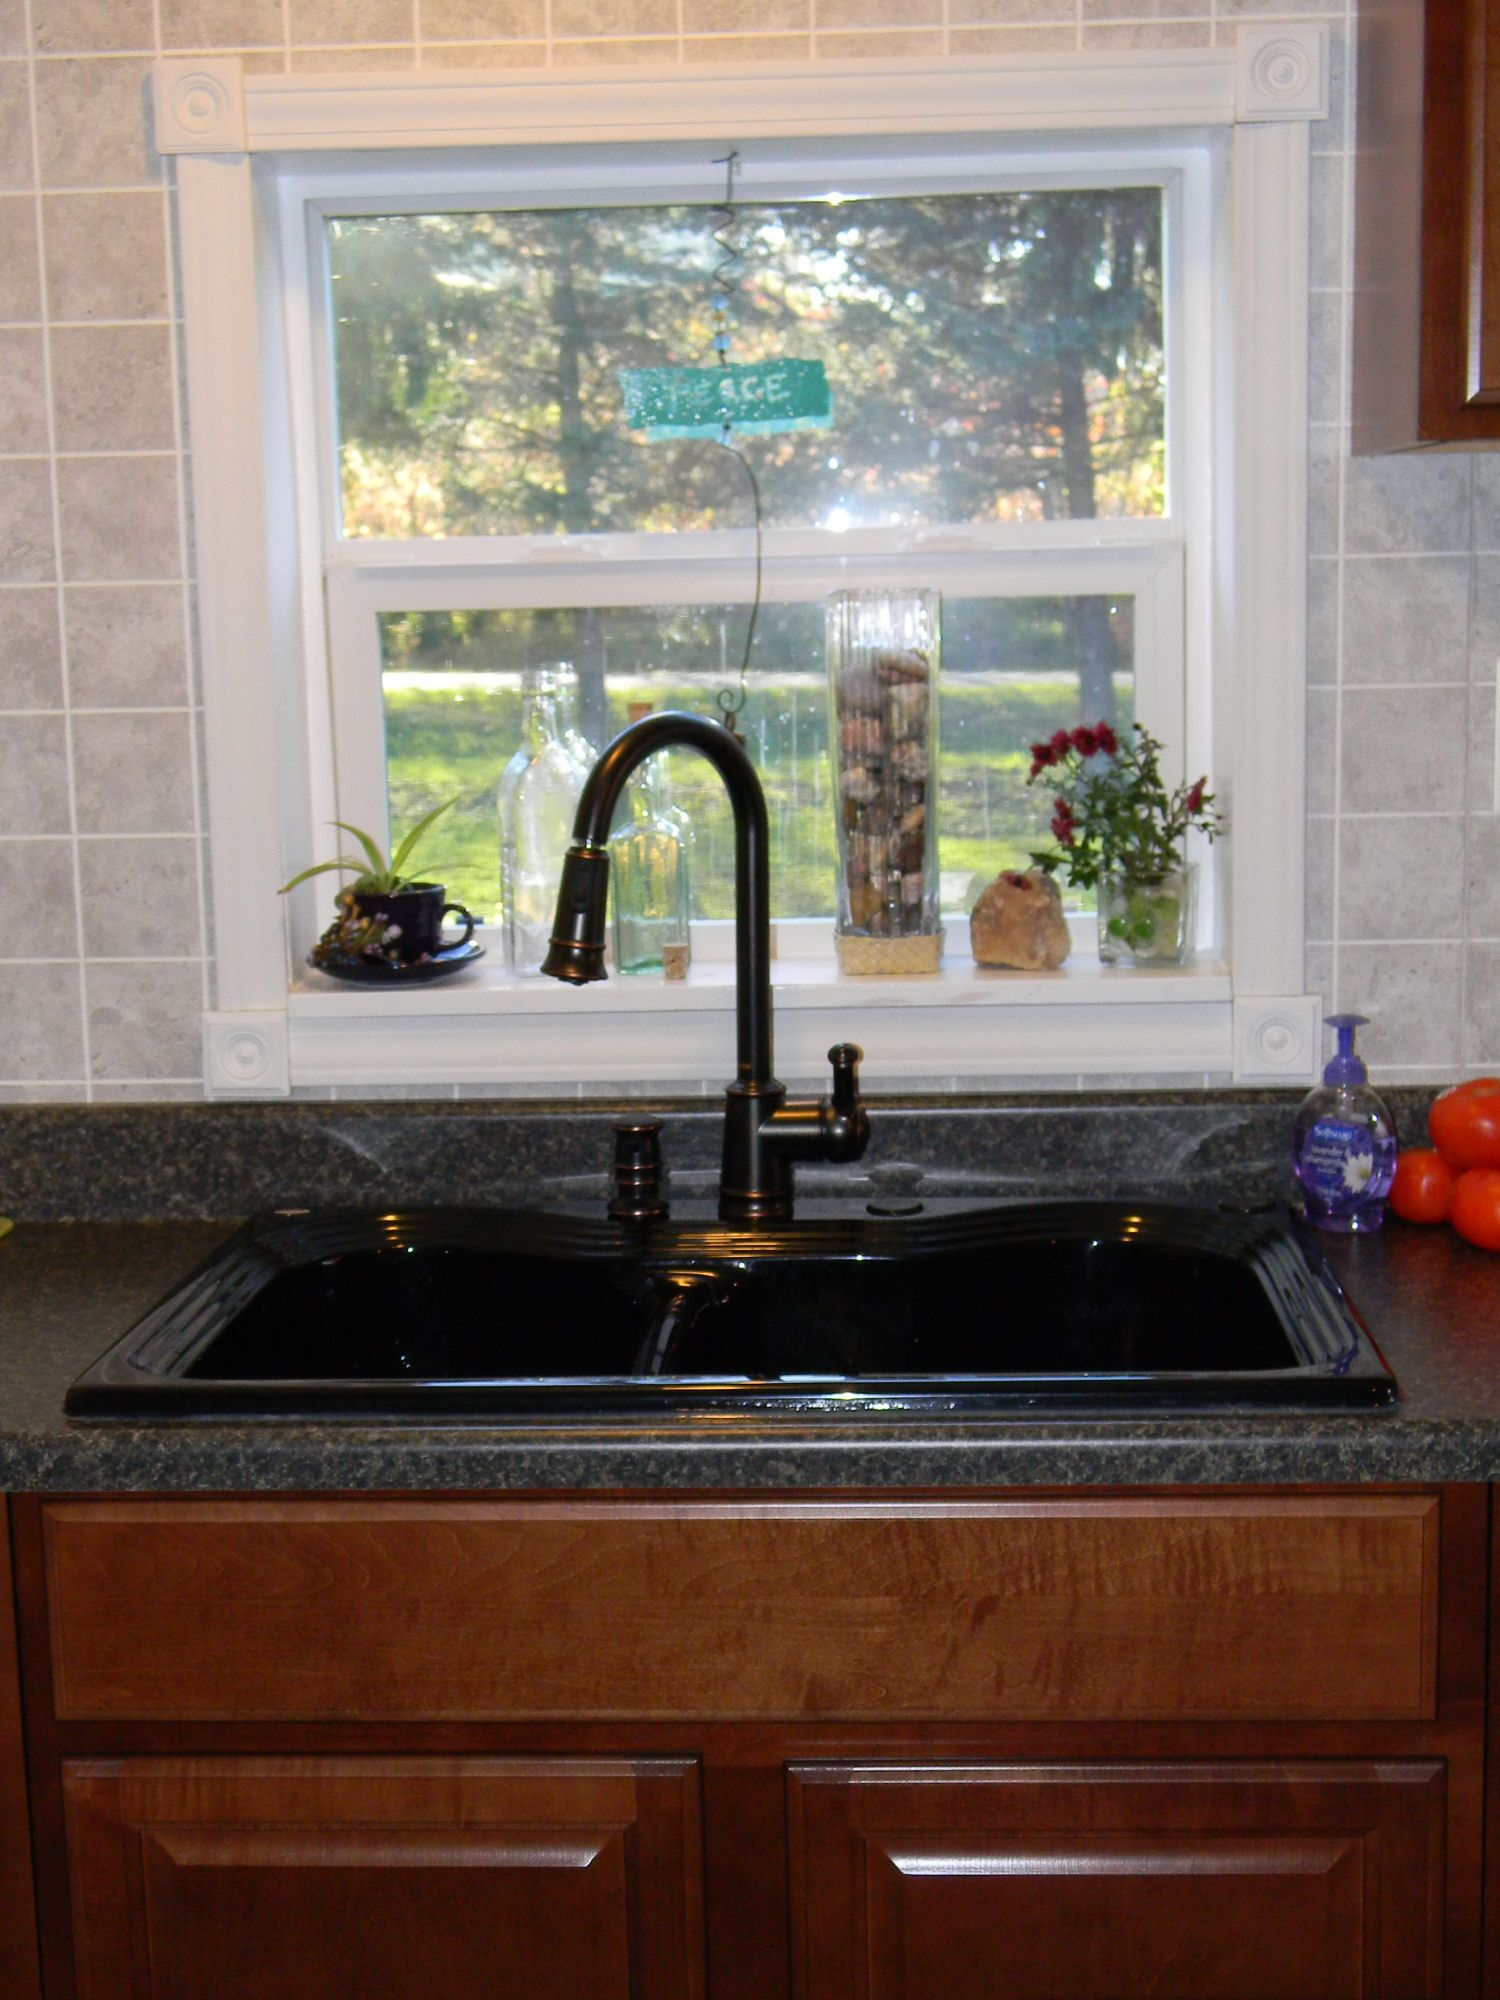 Manufactured Housing Remodels Kitchen Sink Mobile Home Remodel